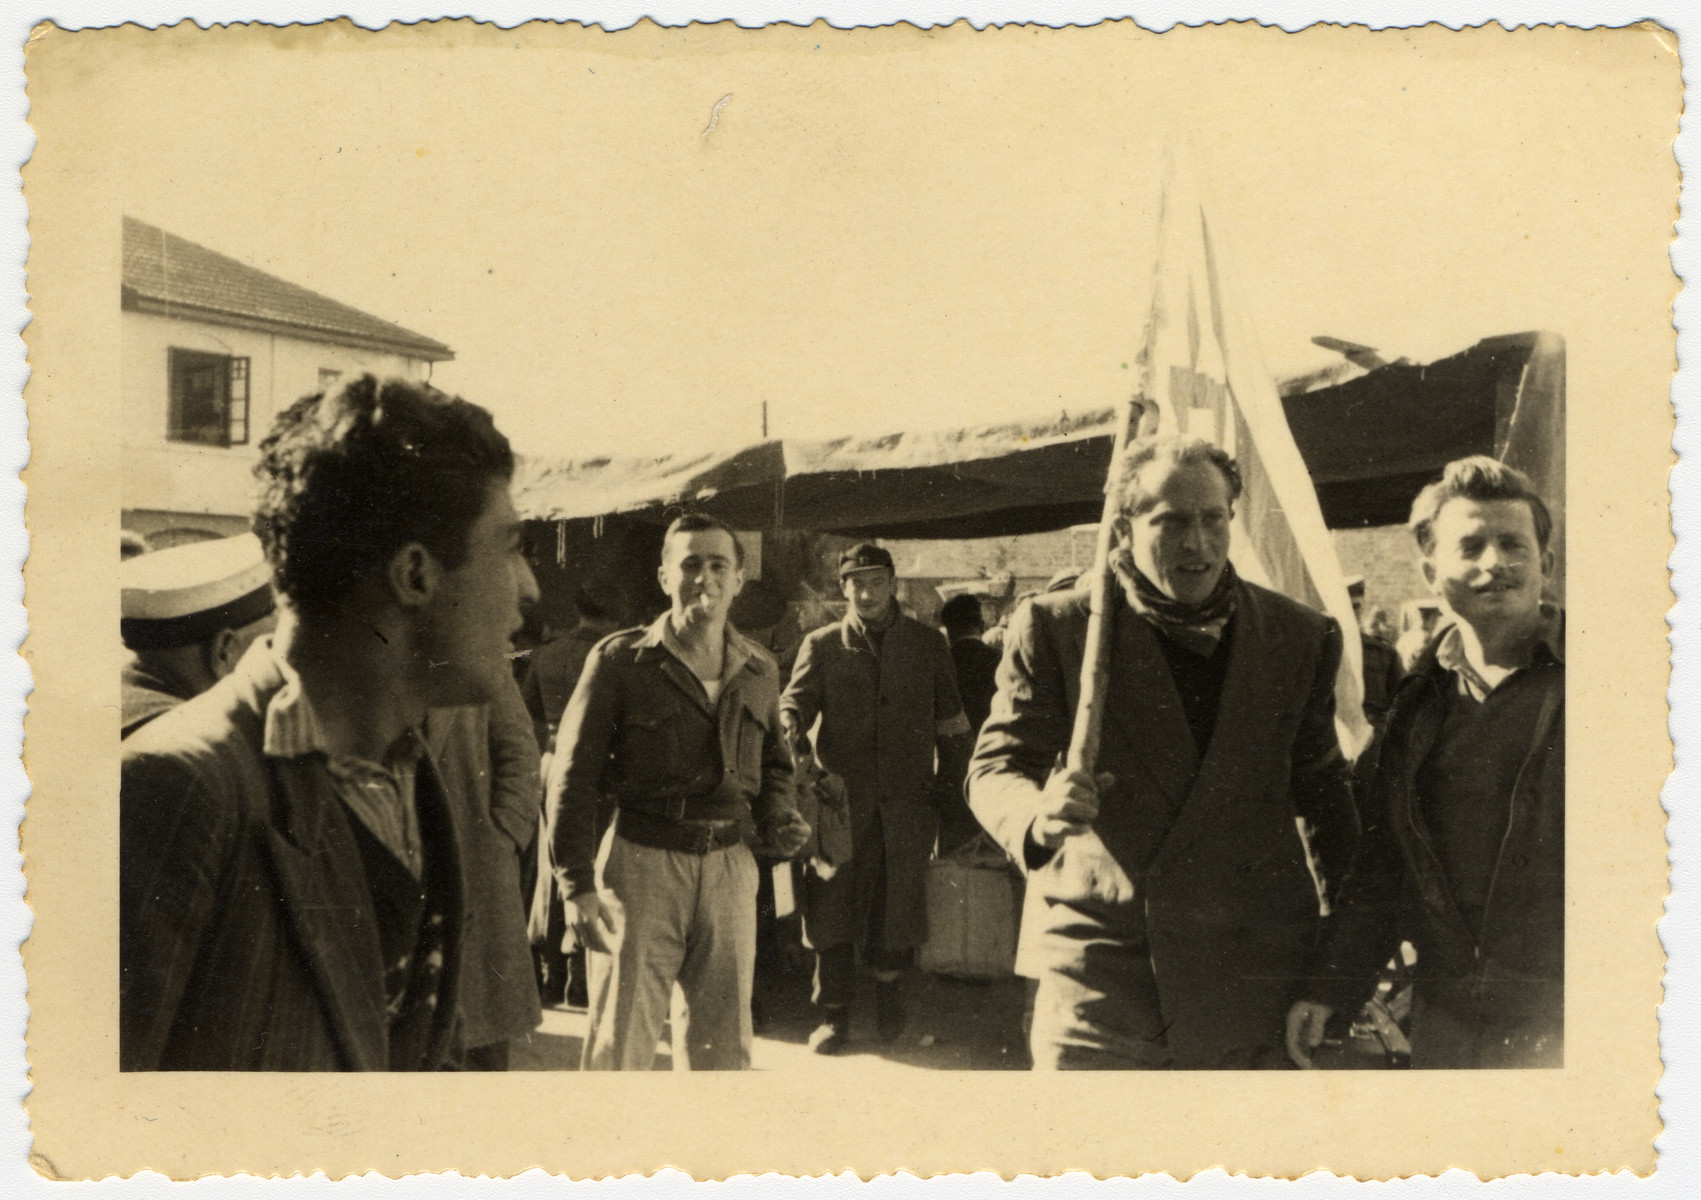 Jewish DPs gather with an Israeli flag celebrate either their arrival in Haifa or their departure from Constanta.  Pictured in the center with a cigarette is the radio operator of the Galila, Sonny Weintraub.